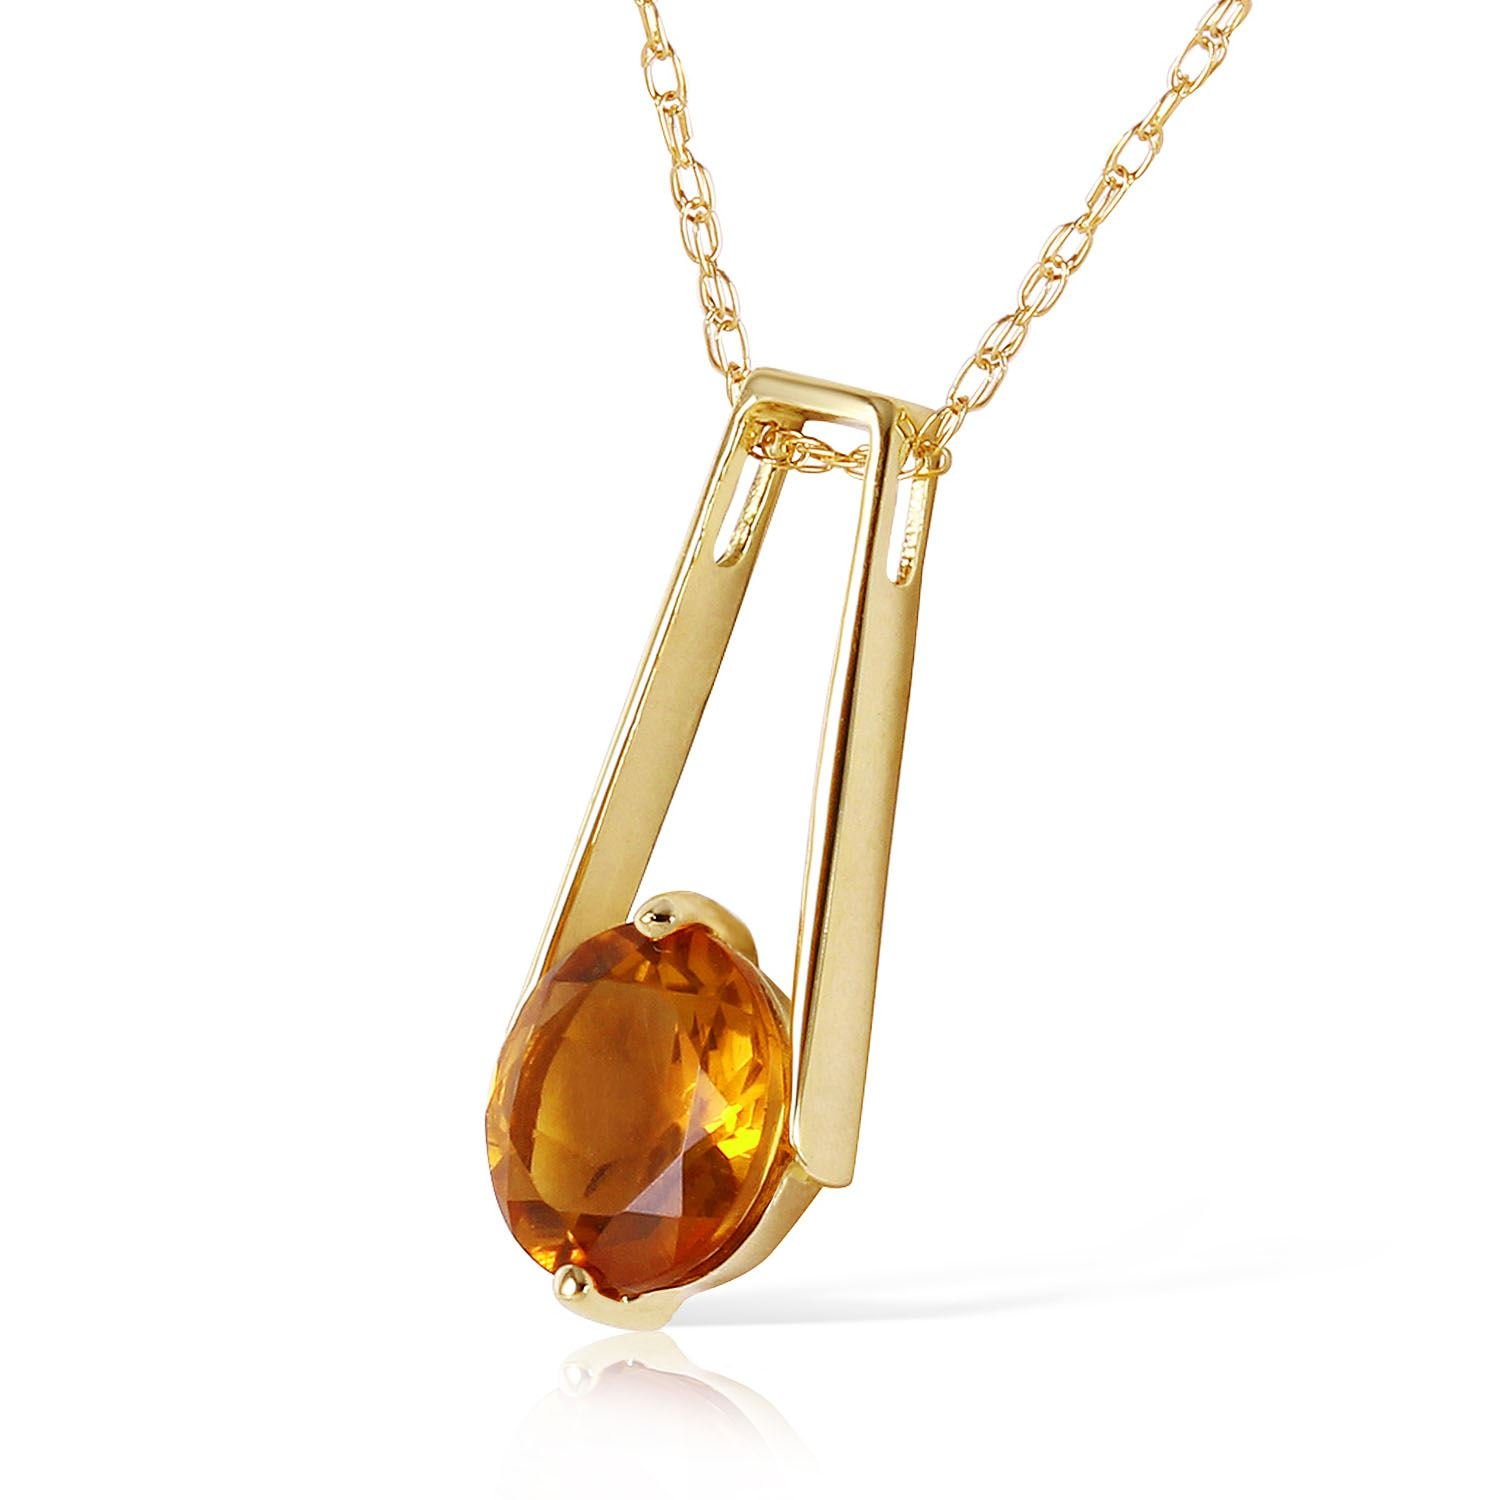 ALARRI 1.45 Carat 14K Solid Gold Privacy Citrine Necklace with 20 Inch Chain Length